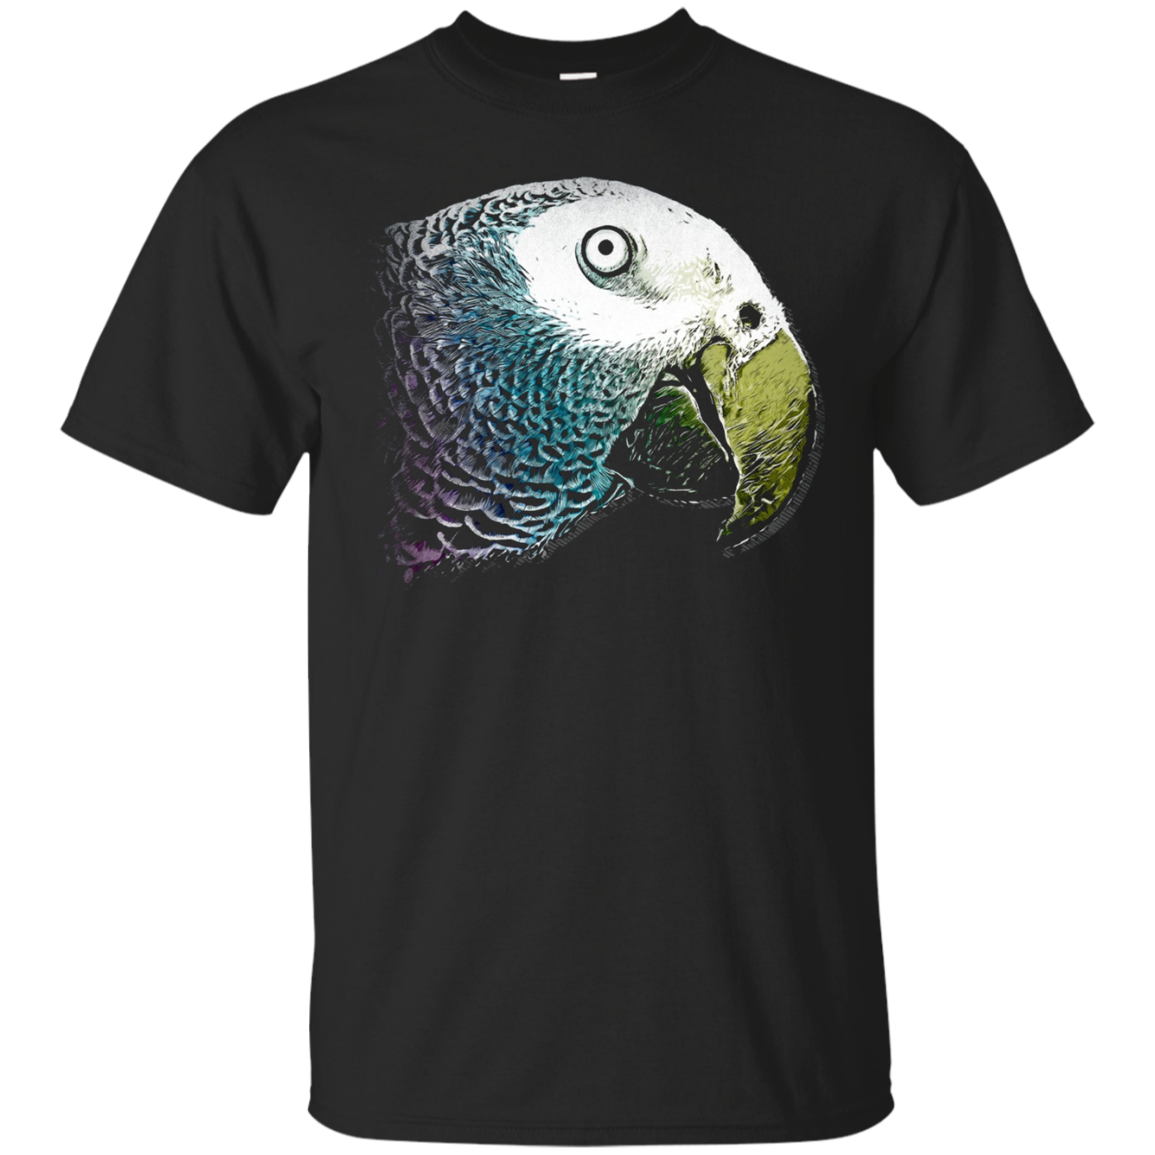 Parrot Head T-shirt Painting